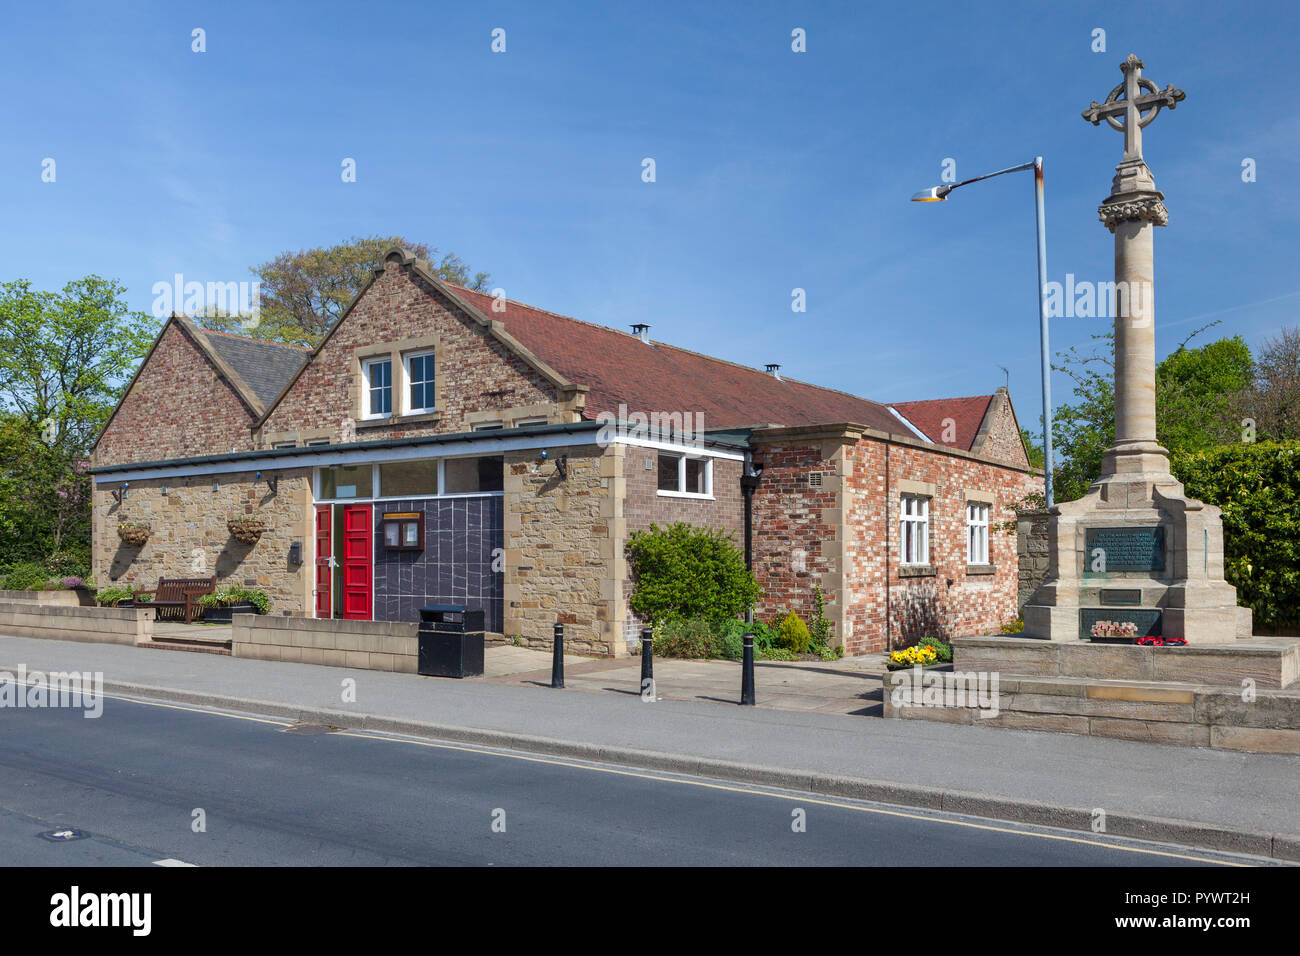 The village hall and war memorial in Boston Spa, West Yorkshire - Stock Image